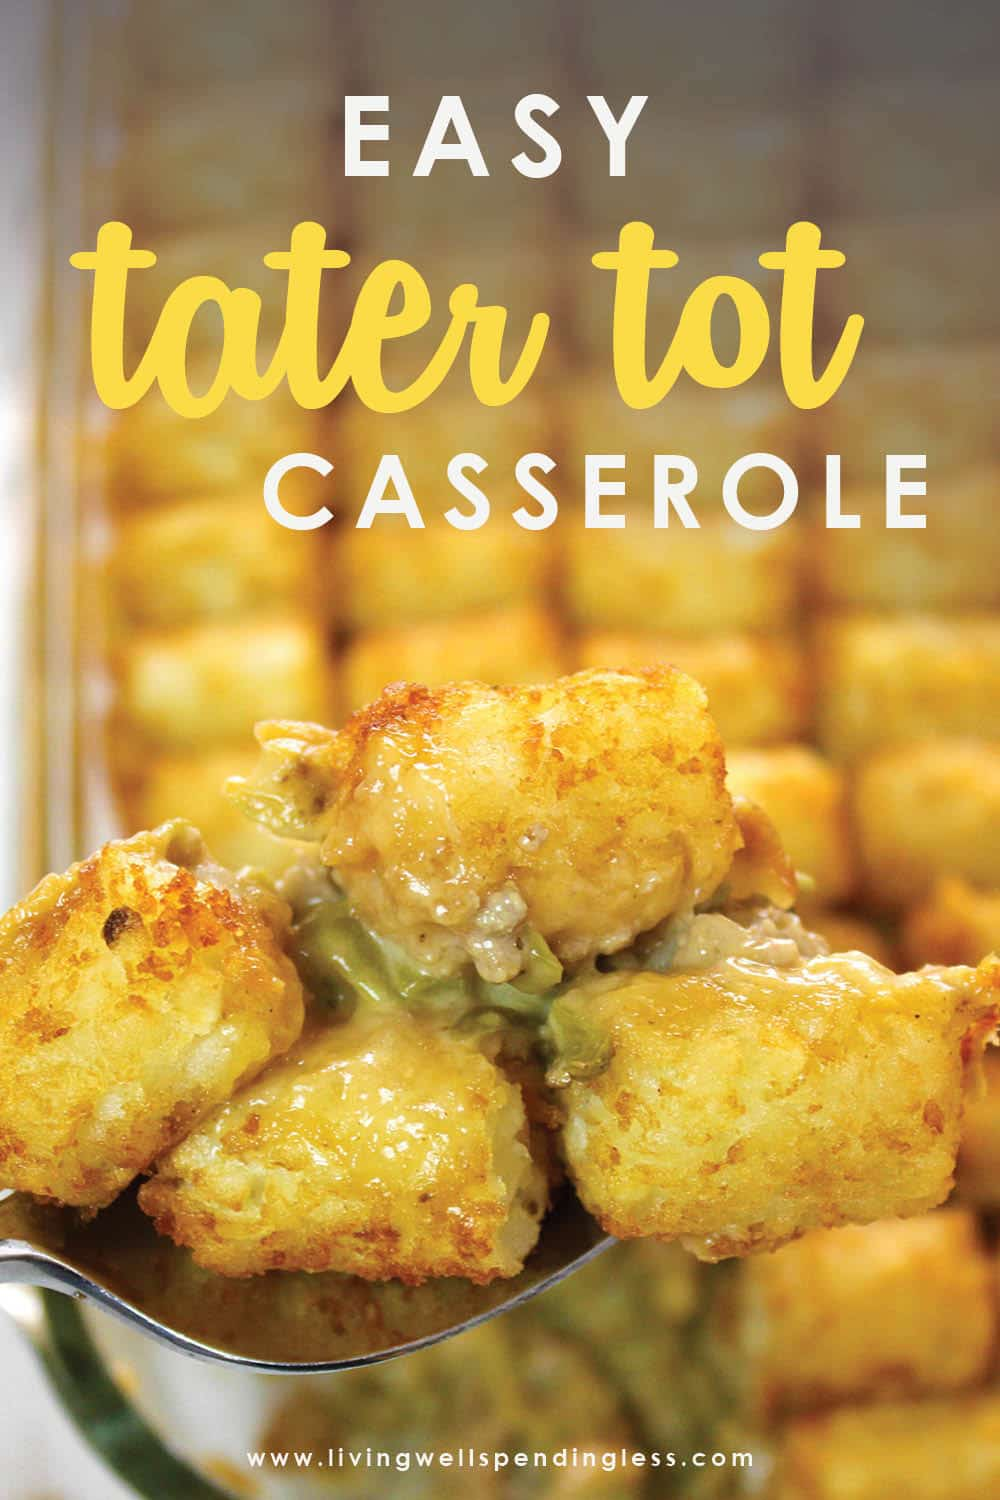 Looking for an easy comfort food dinner that your whole family will love? This simple Tater Tot Casserole is the perfect go-to comfort food recipe!